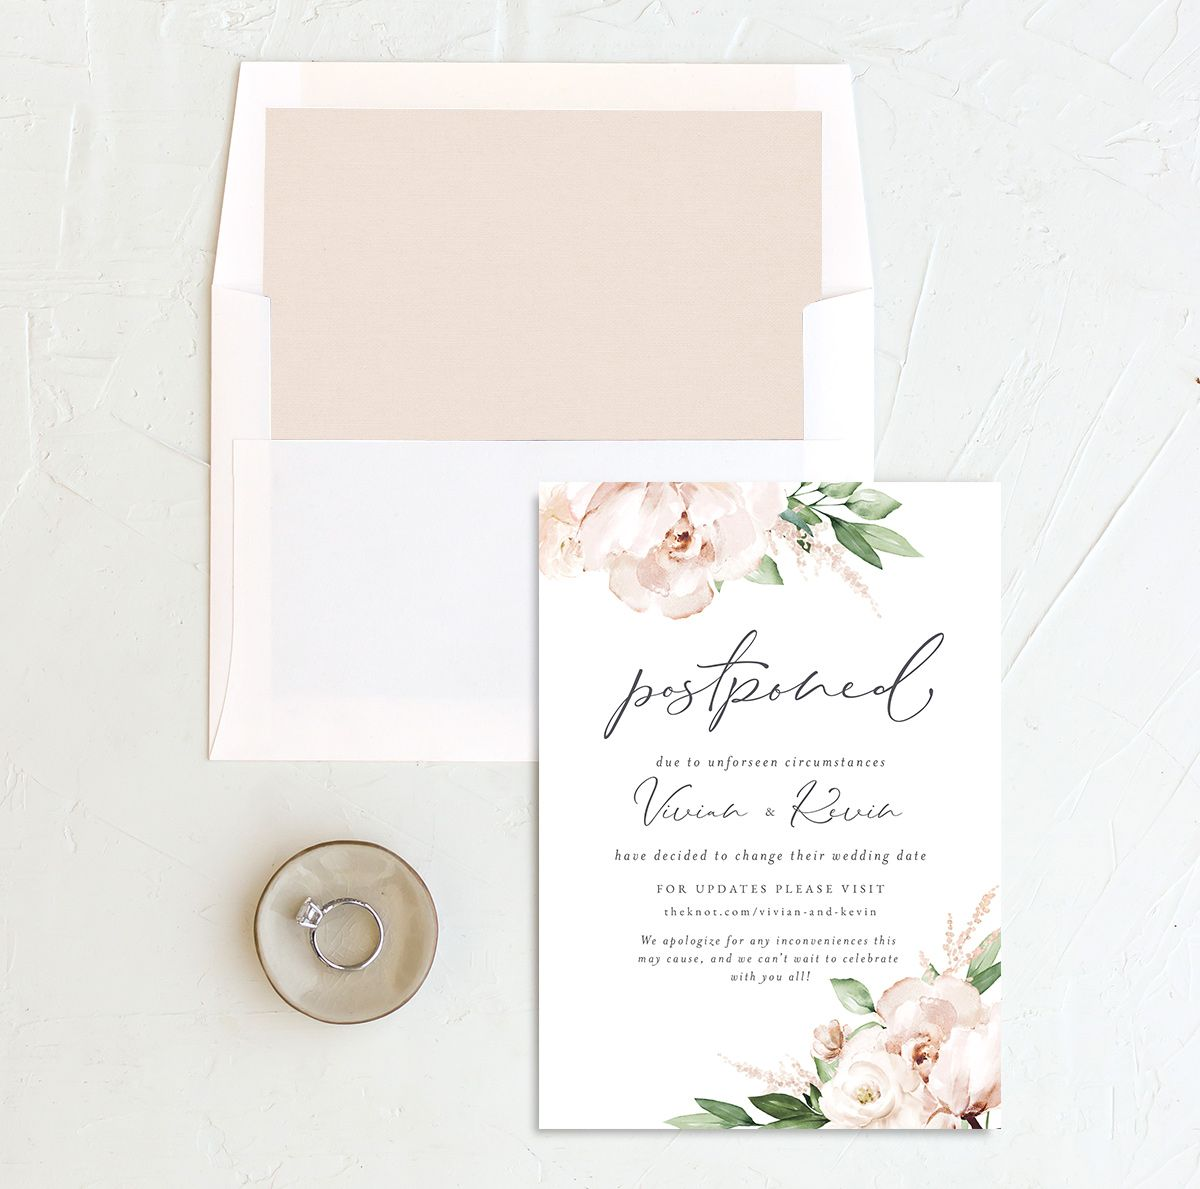 Beloved Floral Change the Date Card front with DIY liner in white